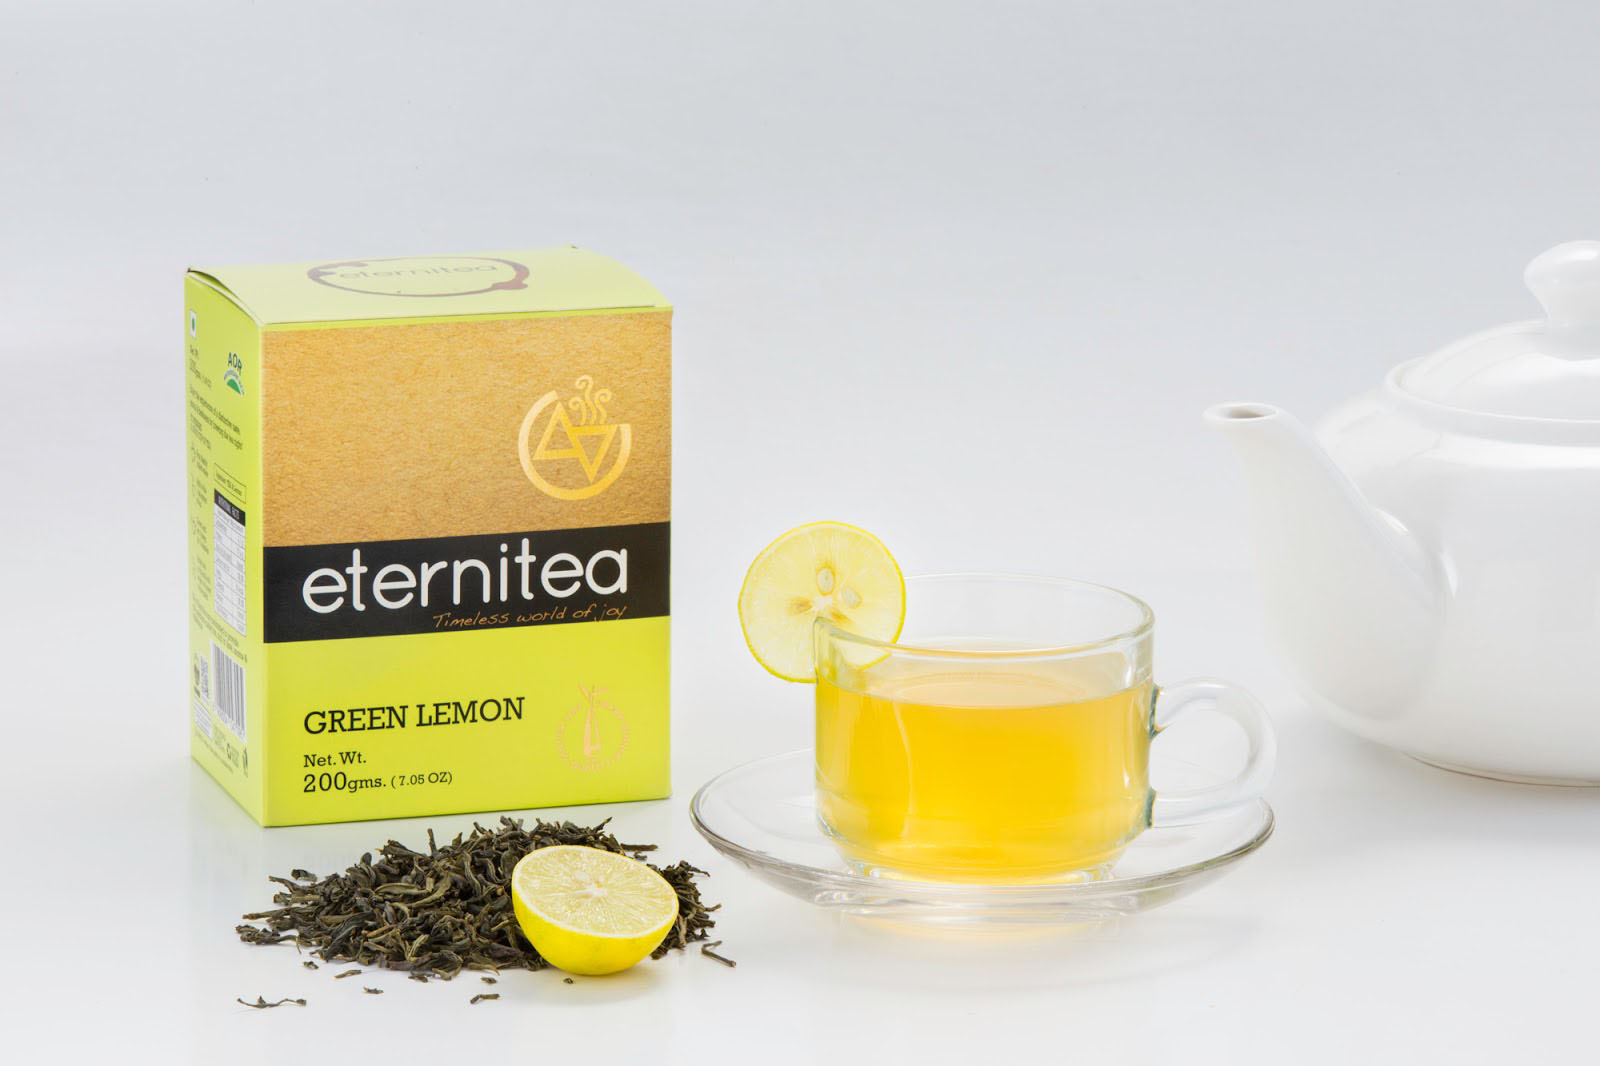 eternitea (1)